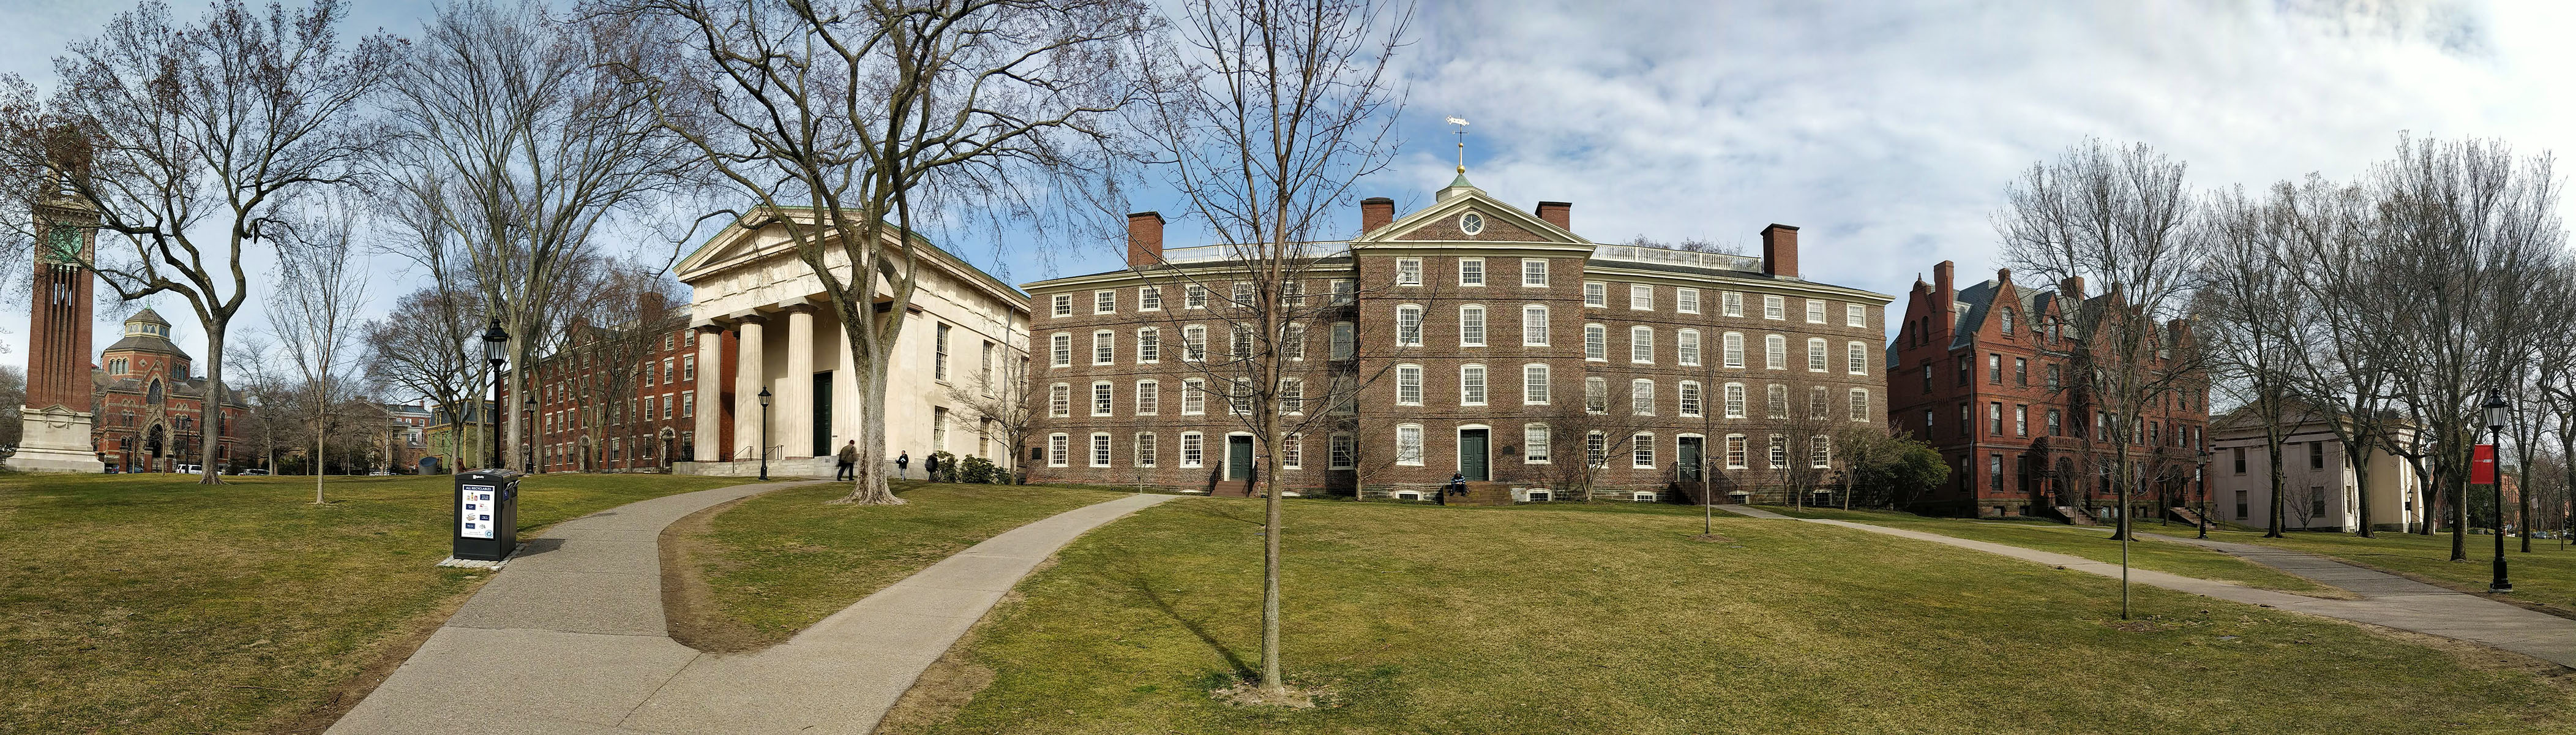 A panoramic view of the central Brown University campus from the east. From left to right are Carrie Tower (1904), Hope College (1822), Manning Hall (1834), University Hall (1770), Slater Hall (1879), and Rhode Island Hall (1840).